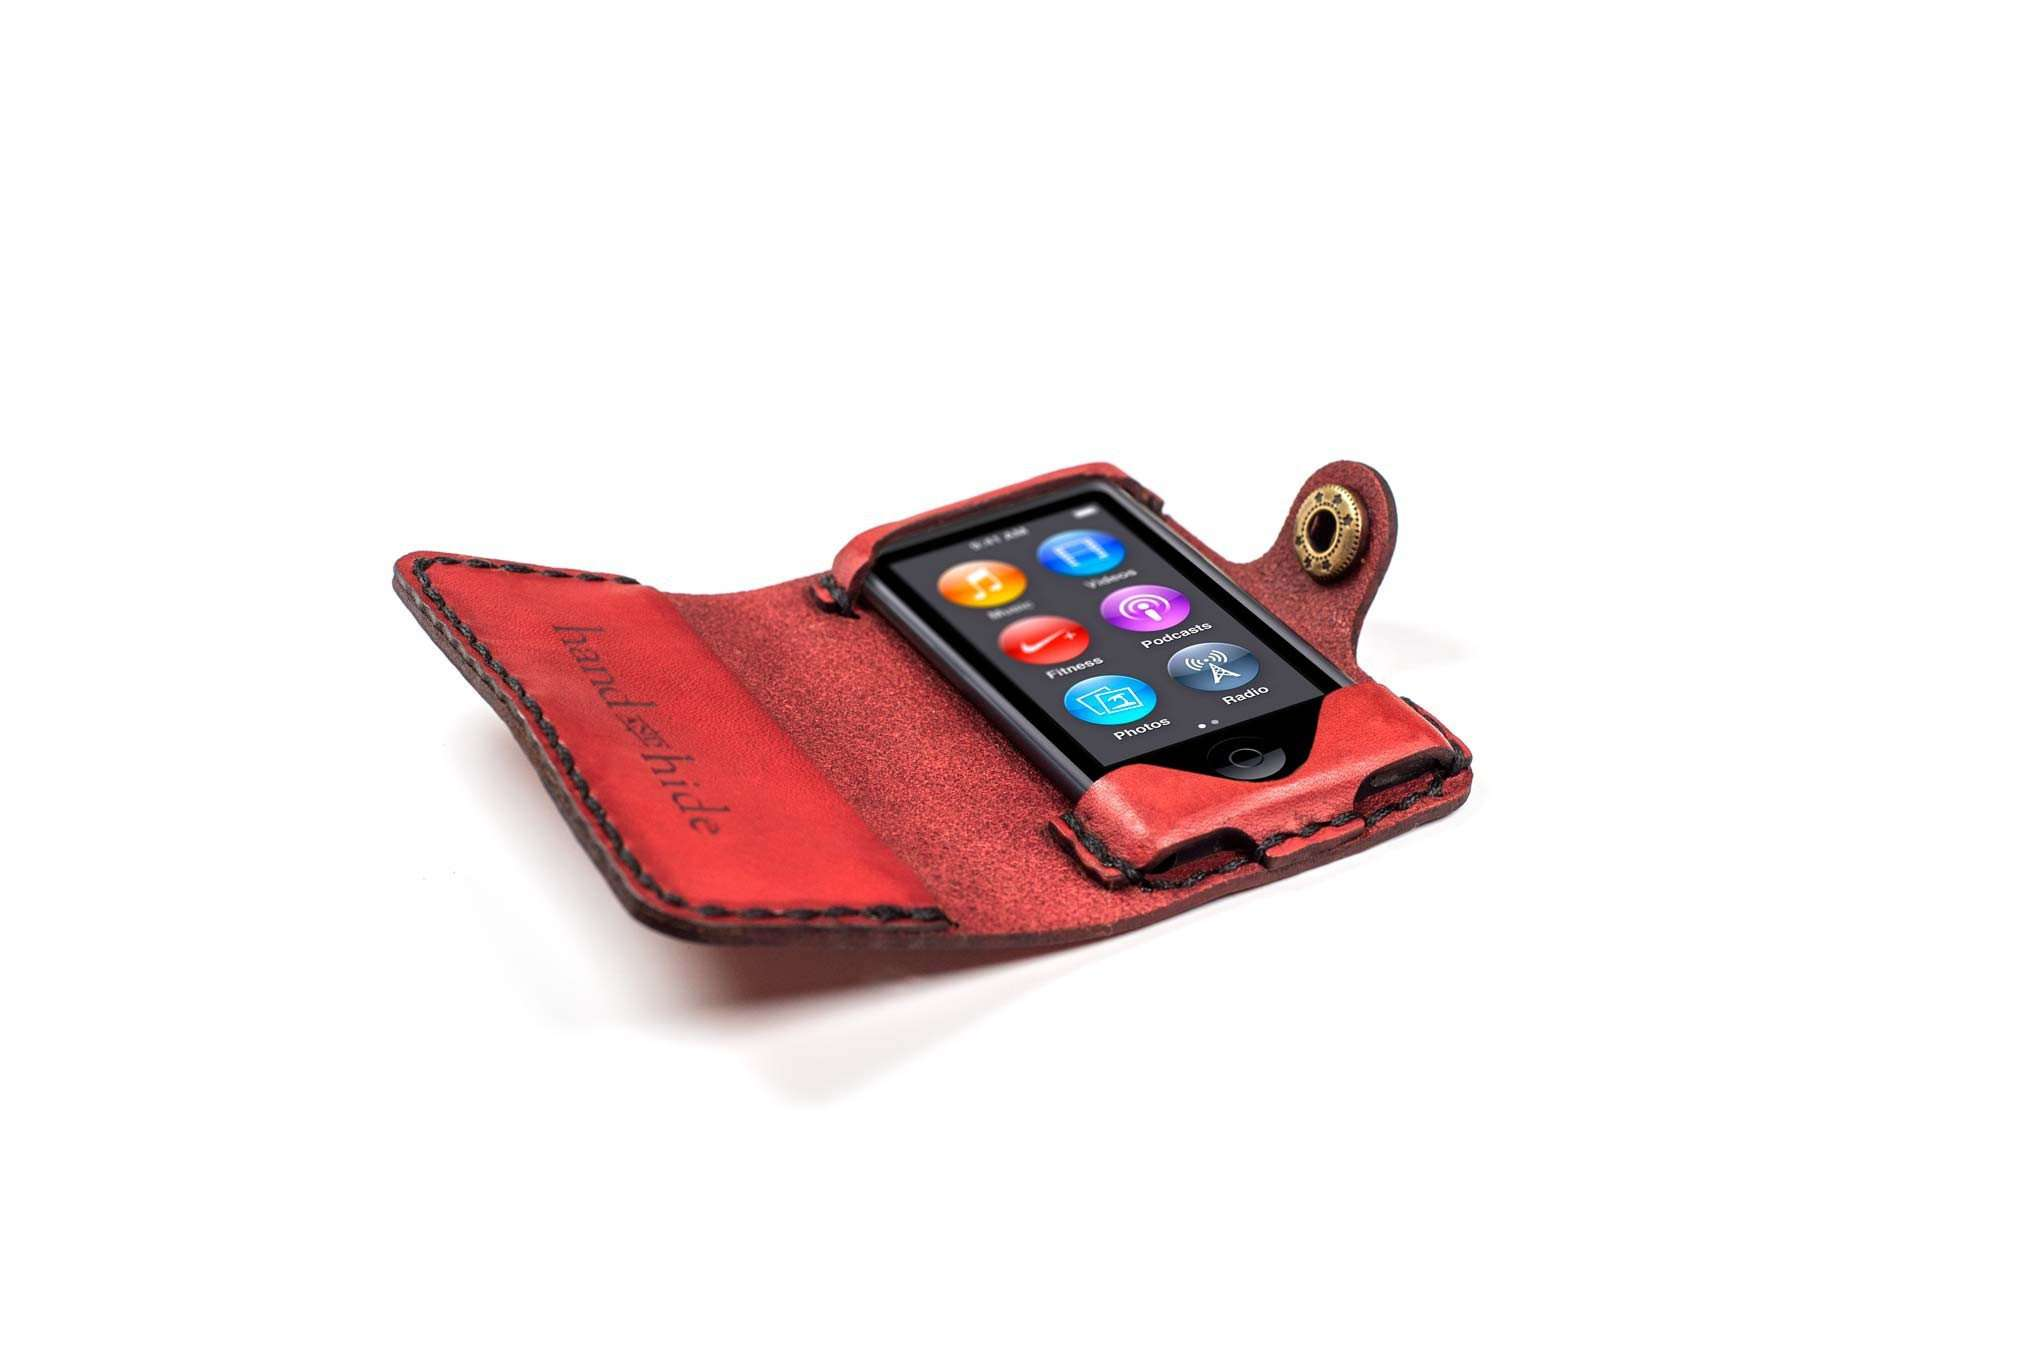 Custom Leather Case For Ipod Nano 7th Generation Hand And Hide Llc